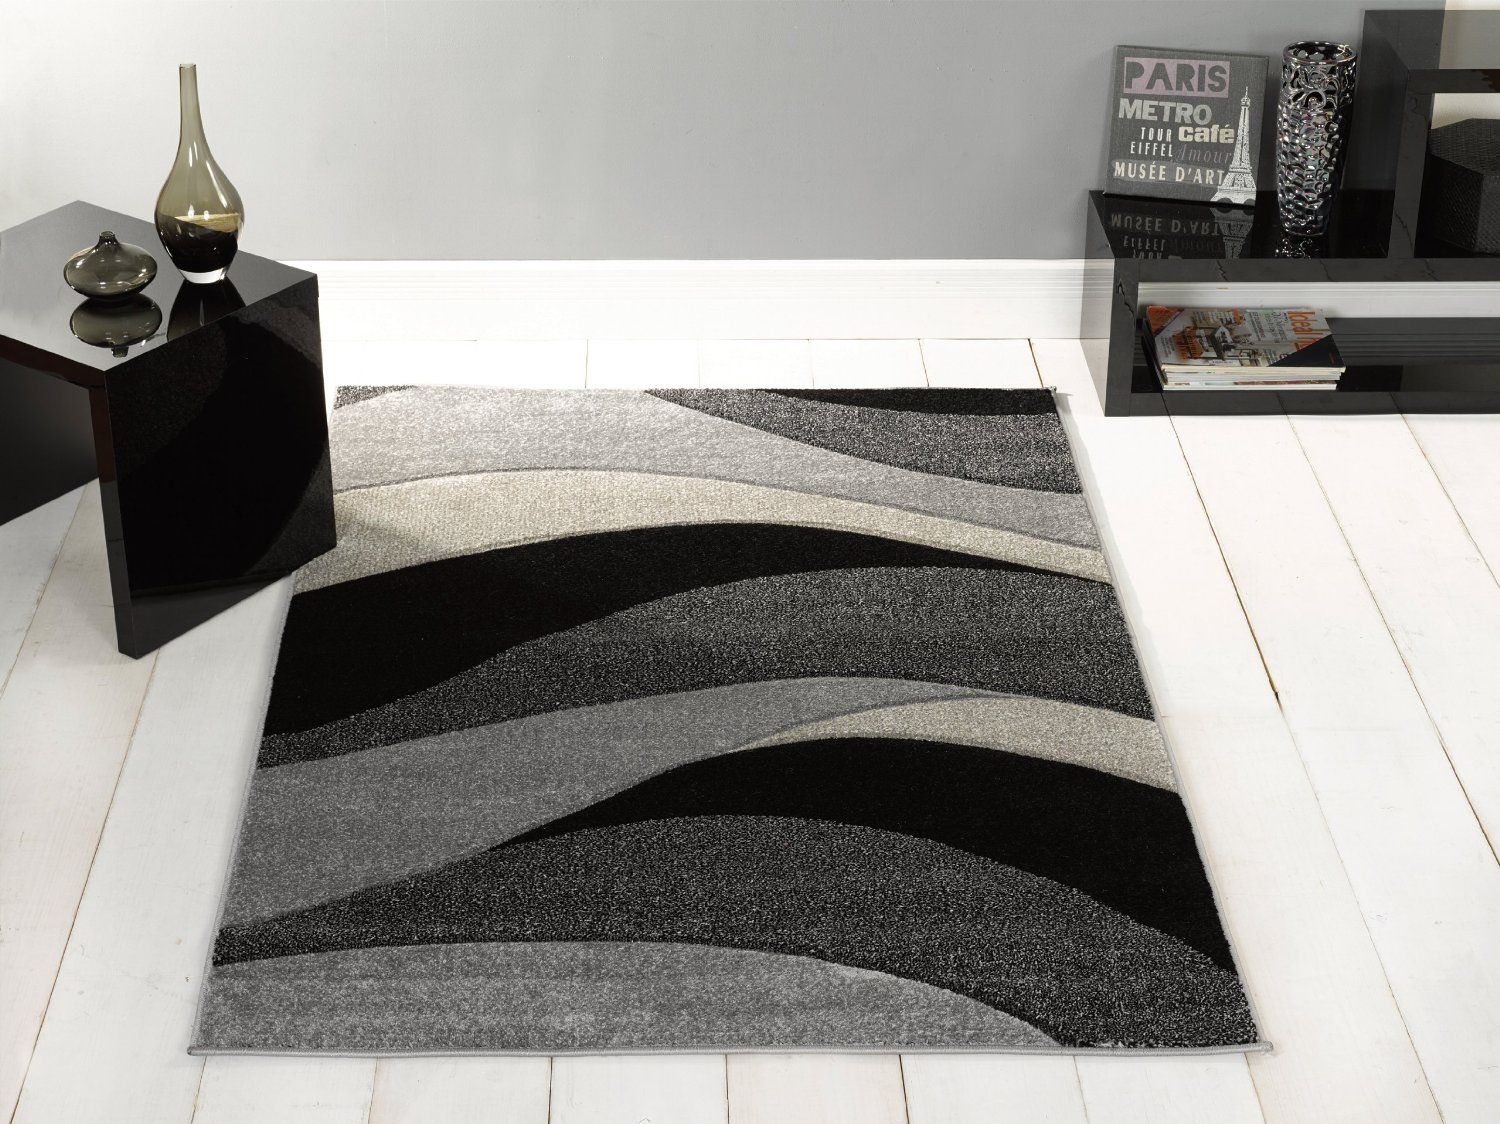 Large Contemporary Waves Design Black Grey Area Rug in 120 x 170 cm